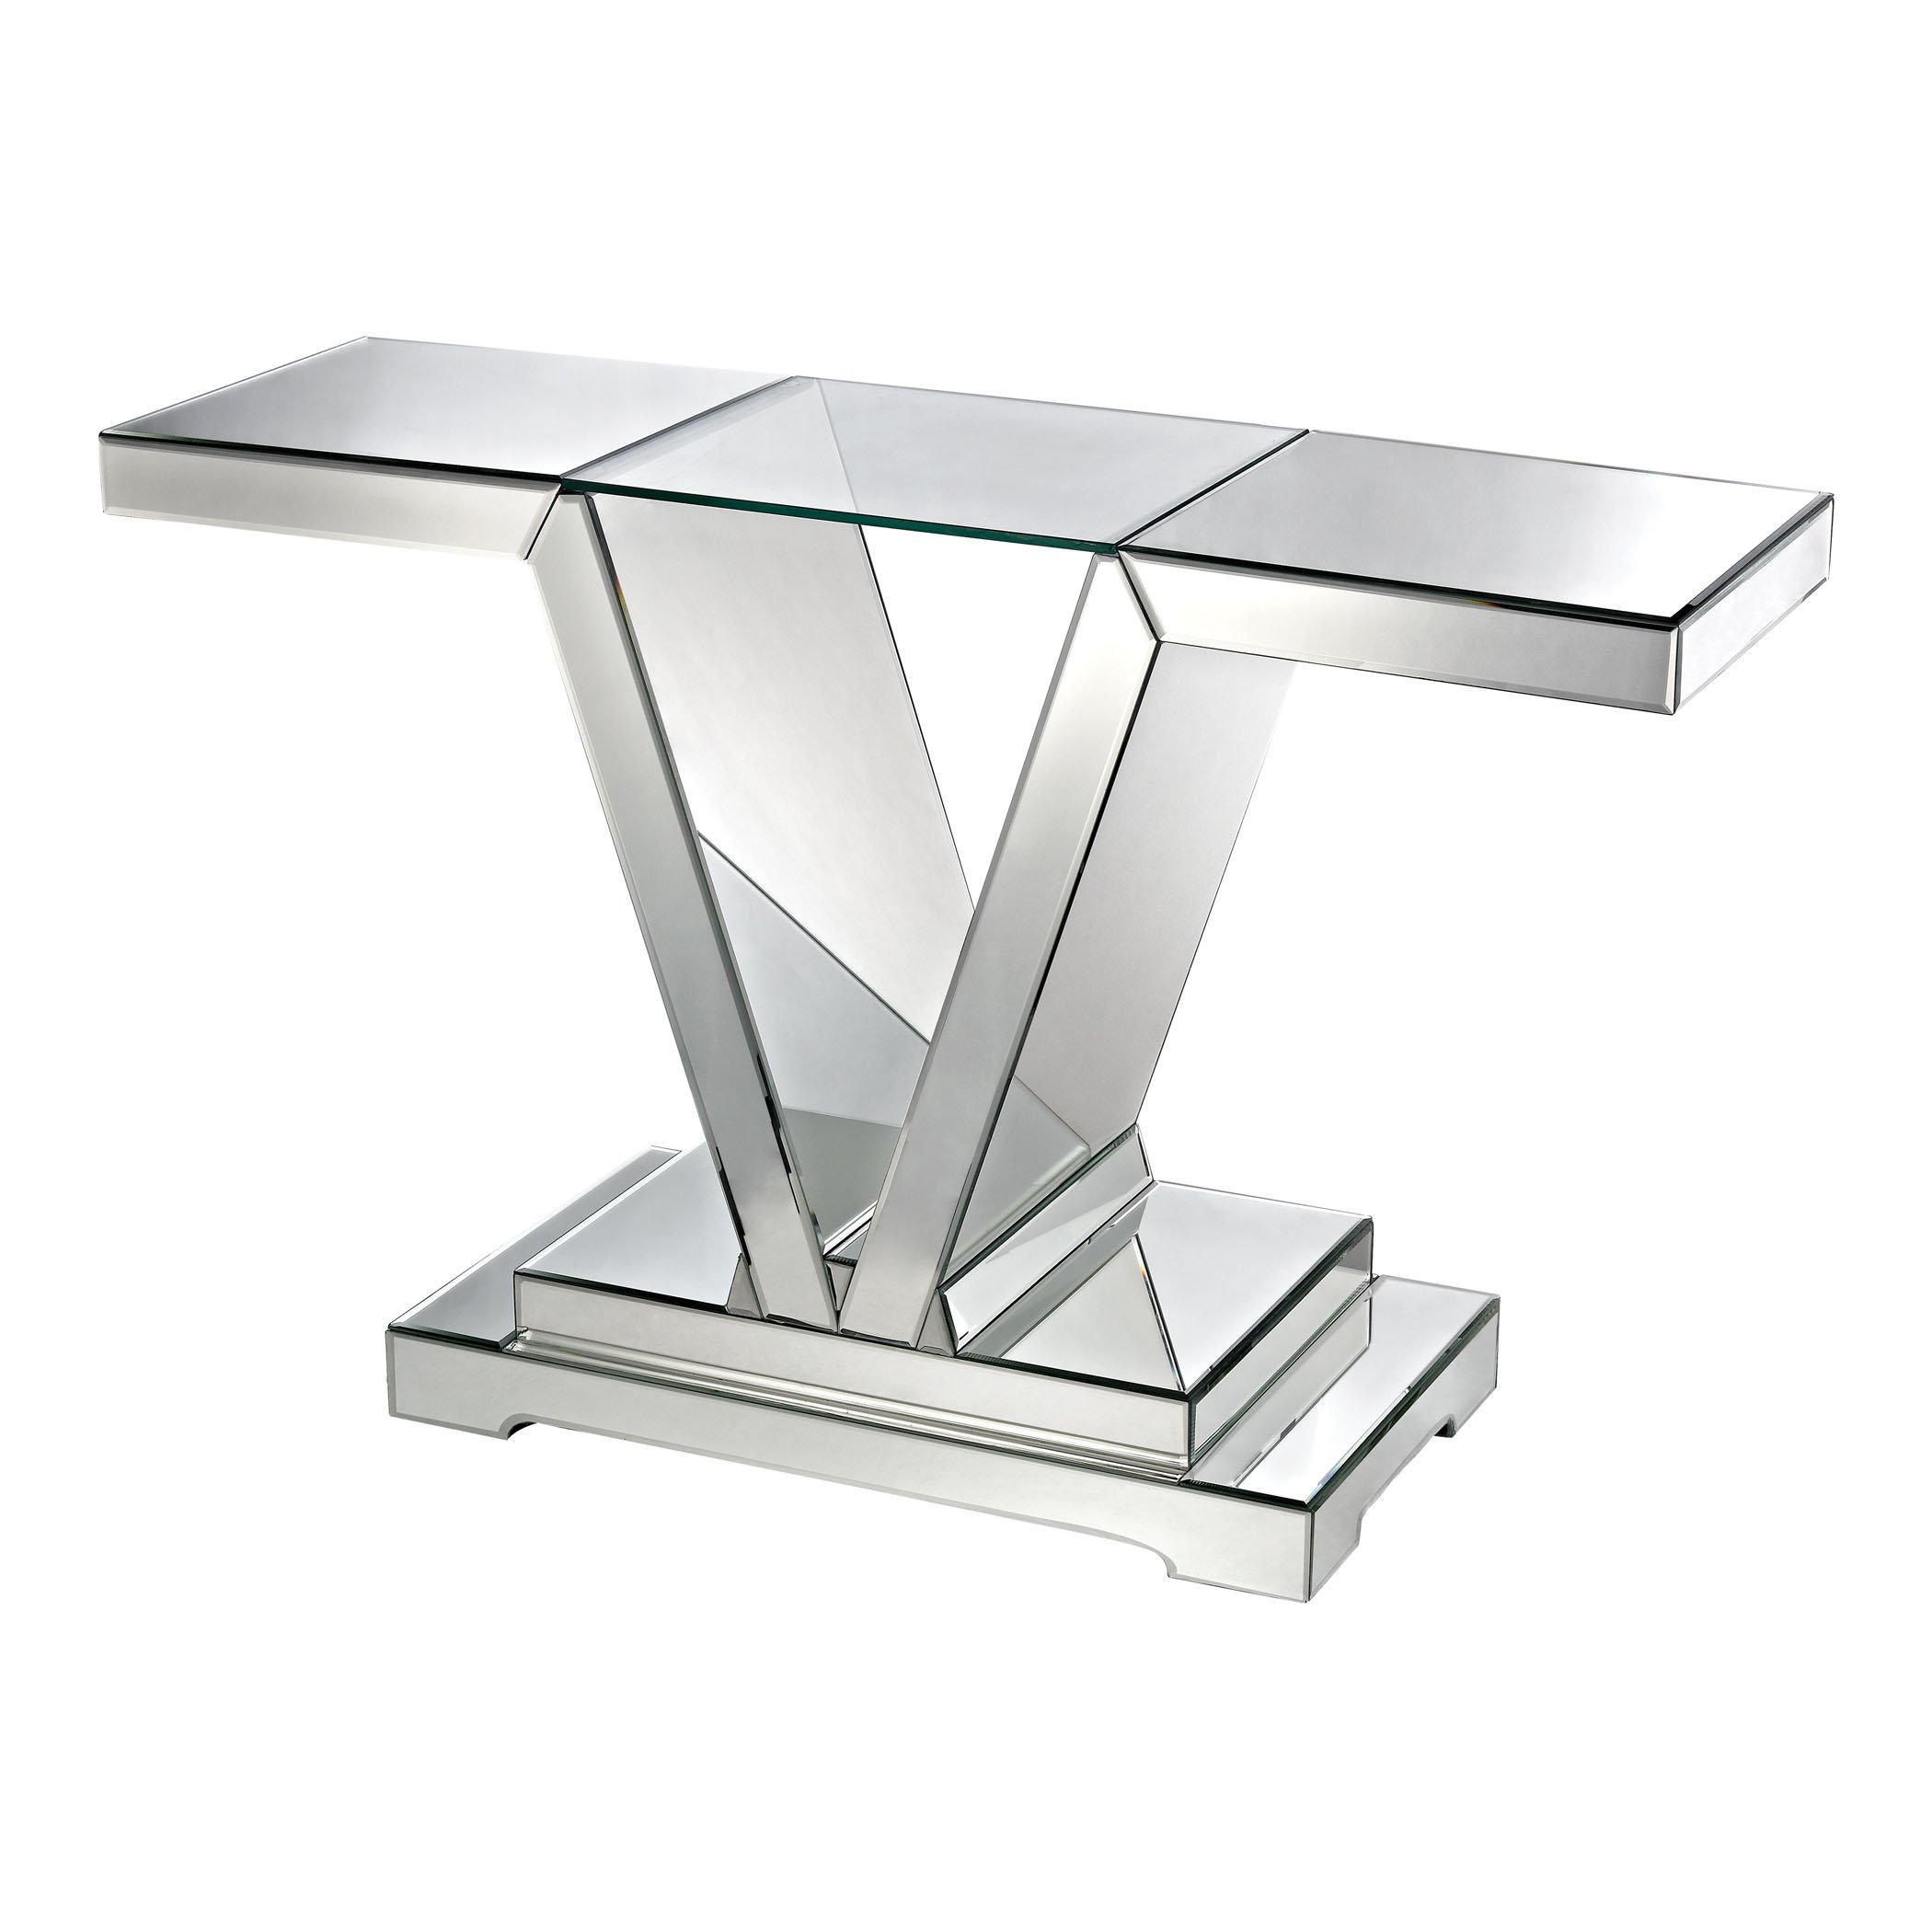 Dimond Home 114174 Mirrored Console Table with Clear Glass Top, 48'' x 15'' x 30''